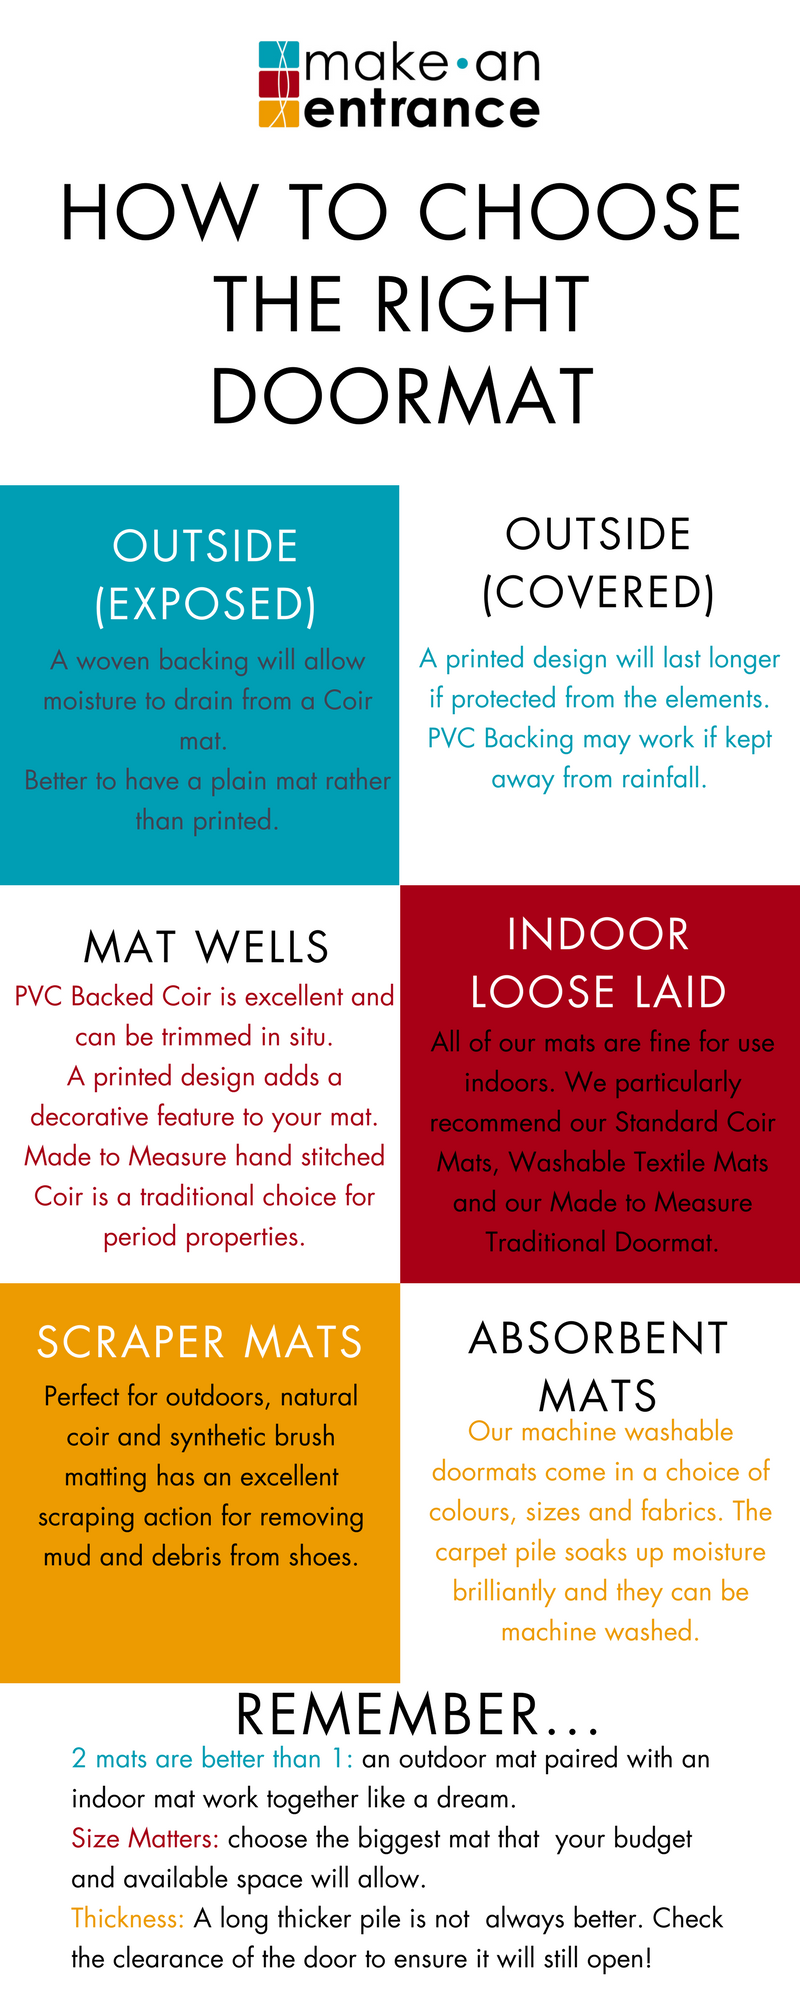 Infographic to help you choose the right doormat